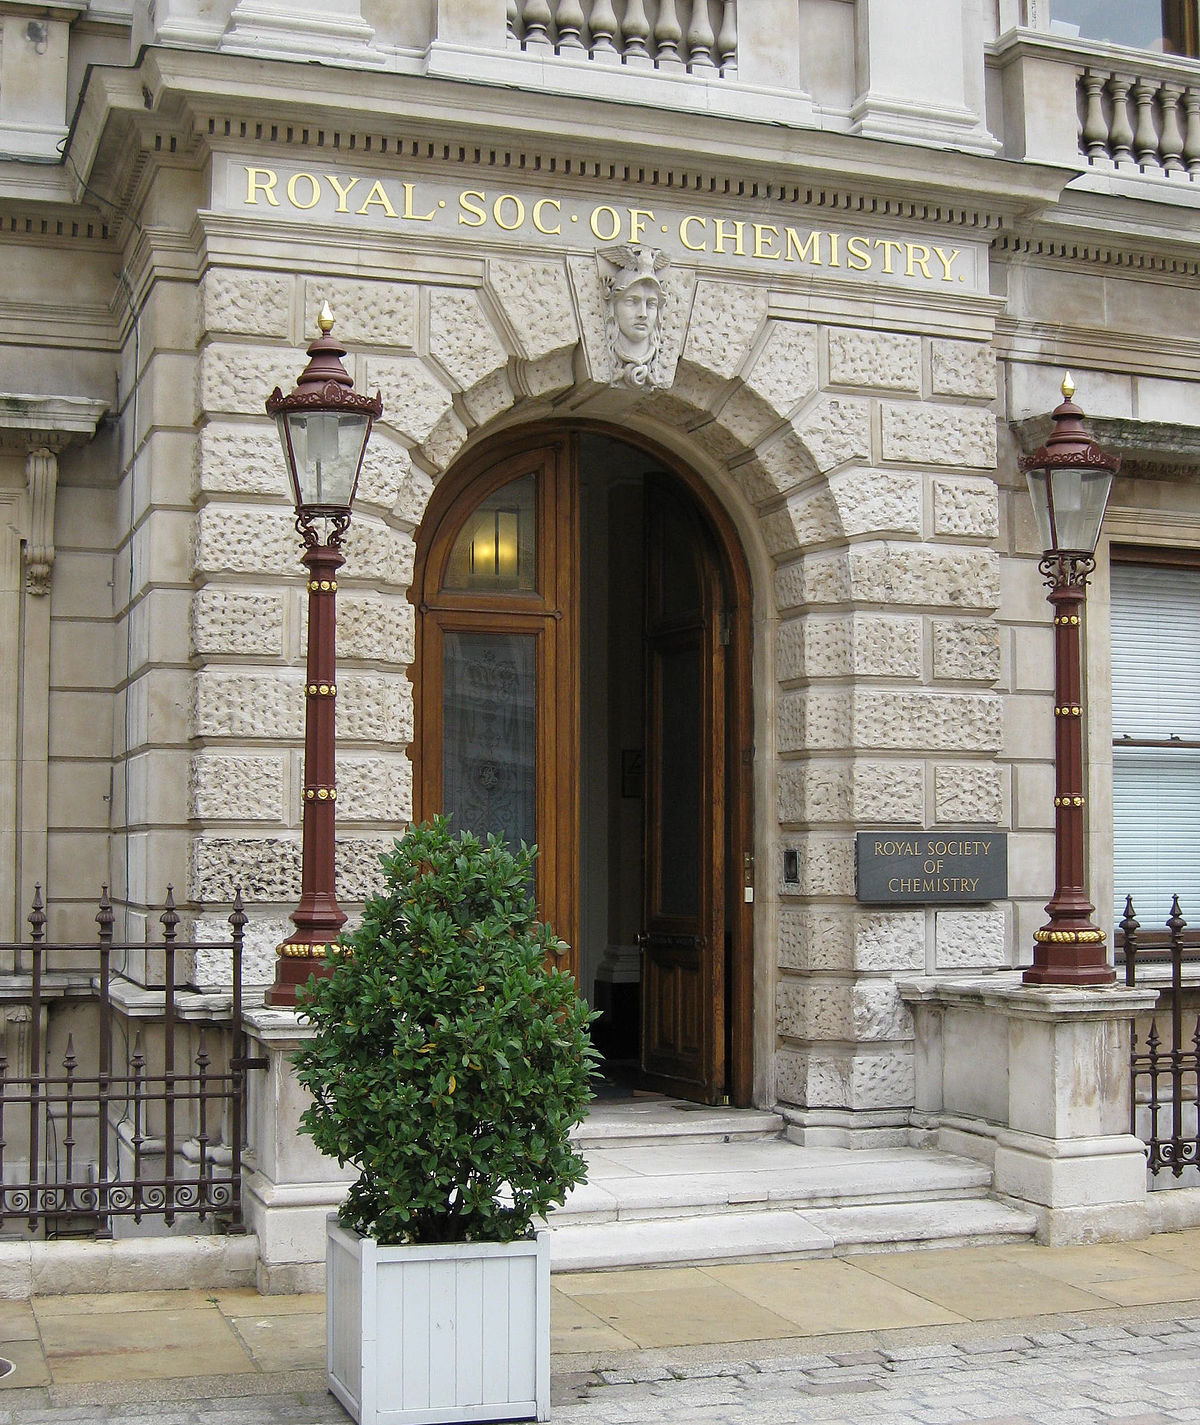 Royal Society of Chemistry - Wikipedia